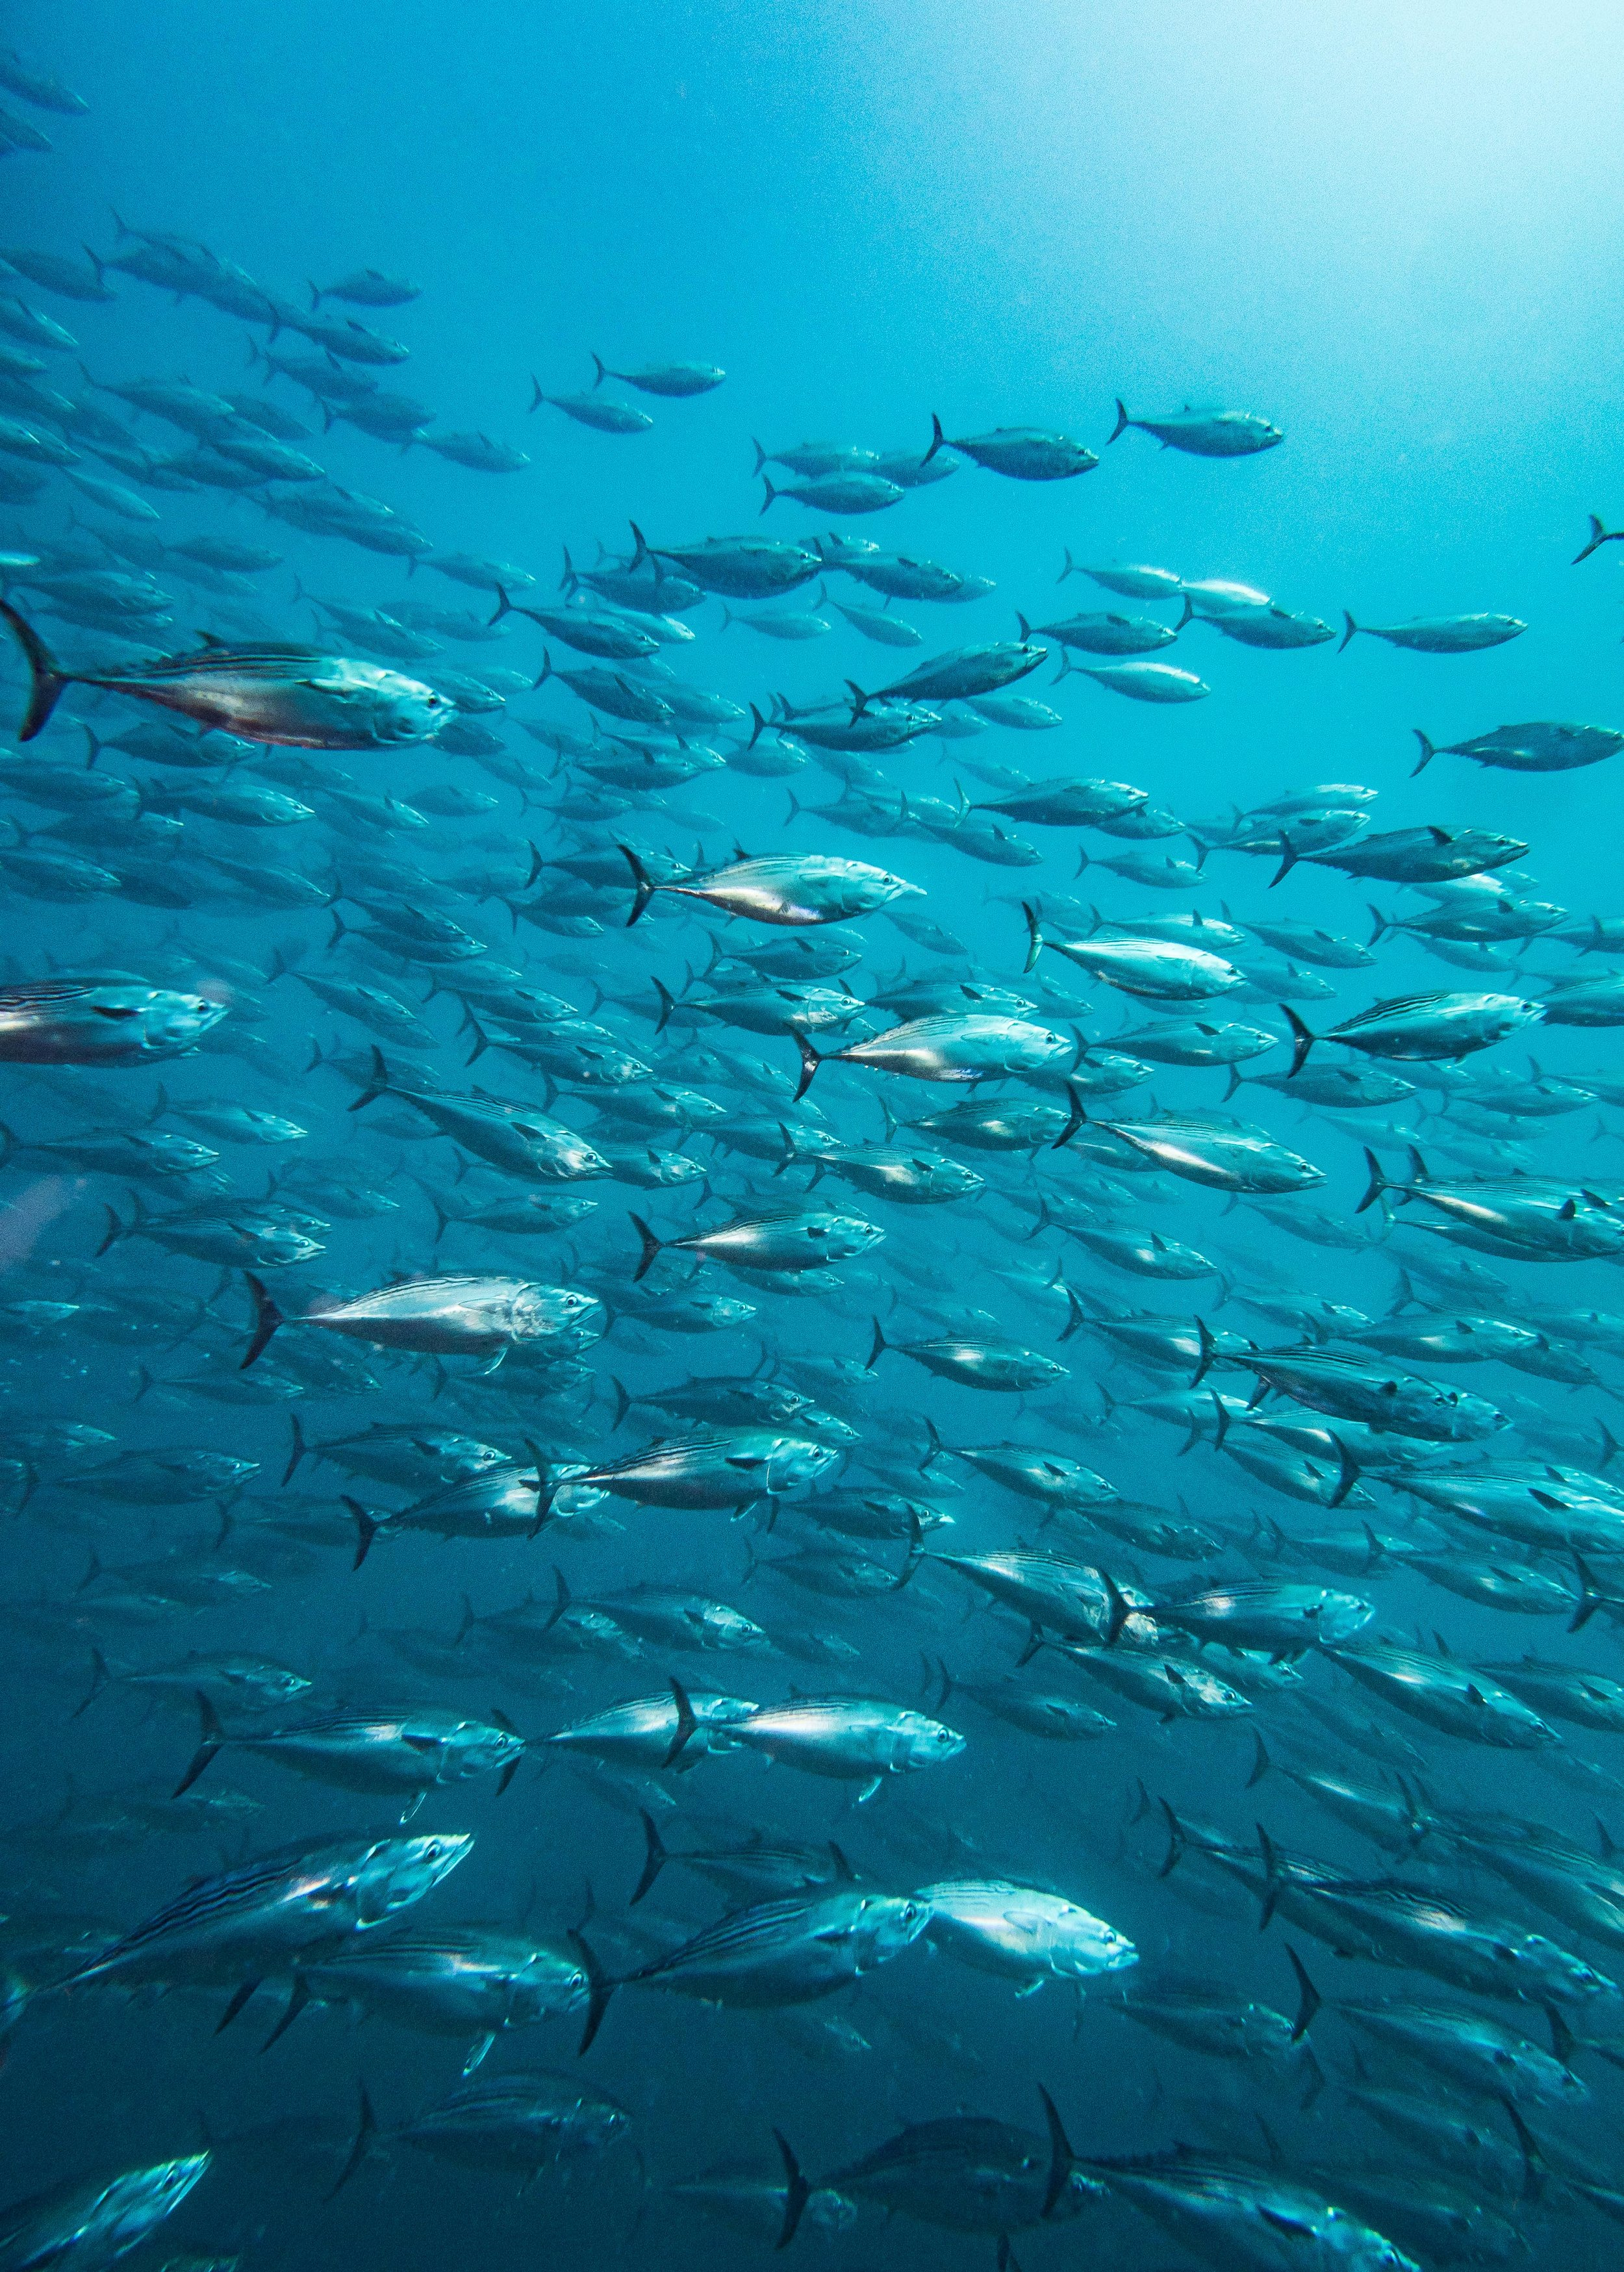 A school of Bonito, relatives of Tuna